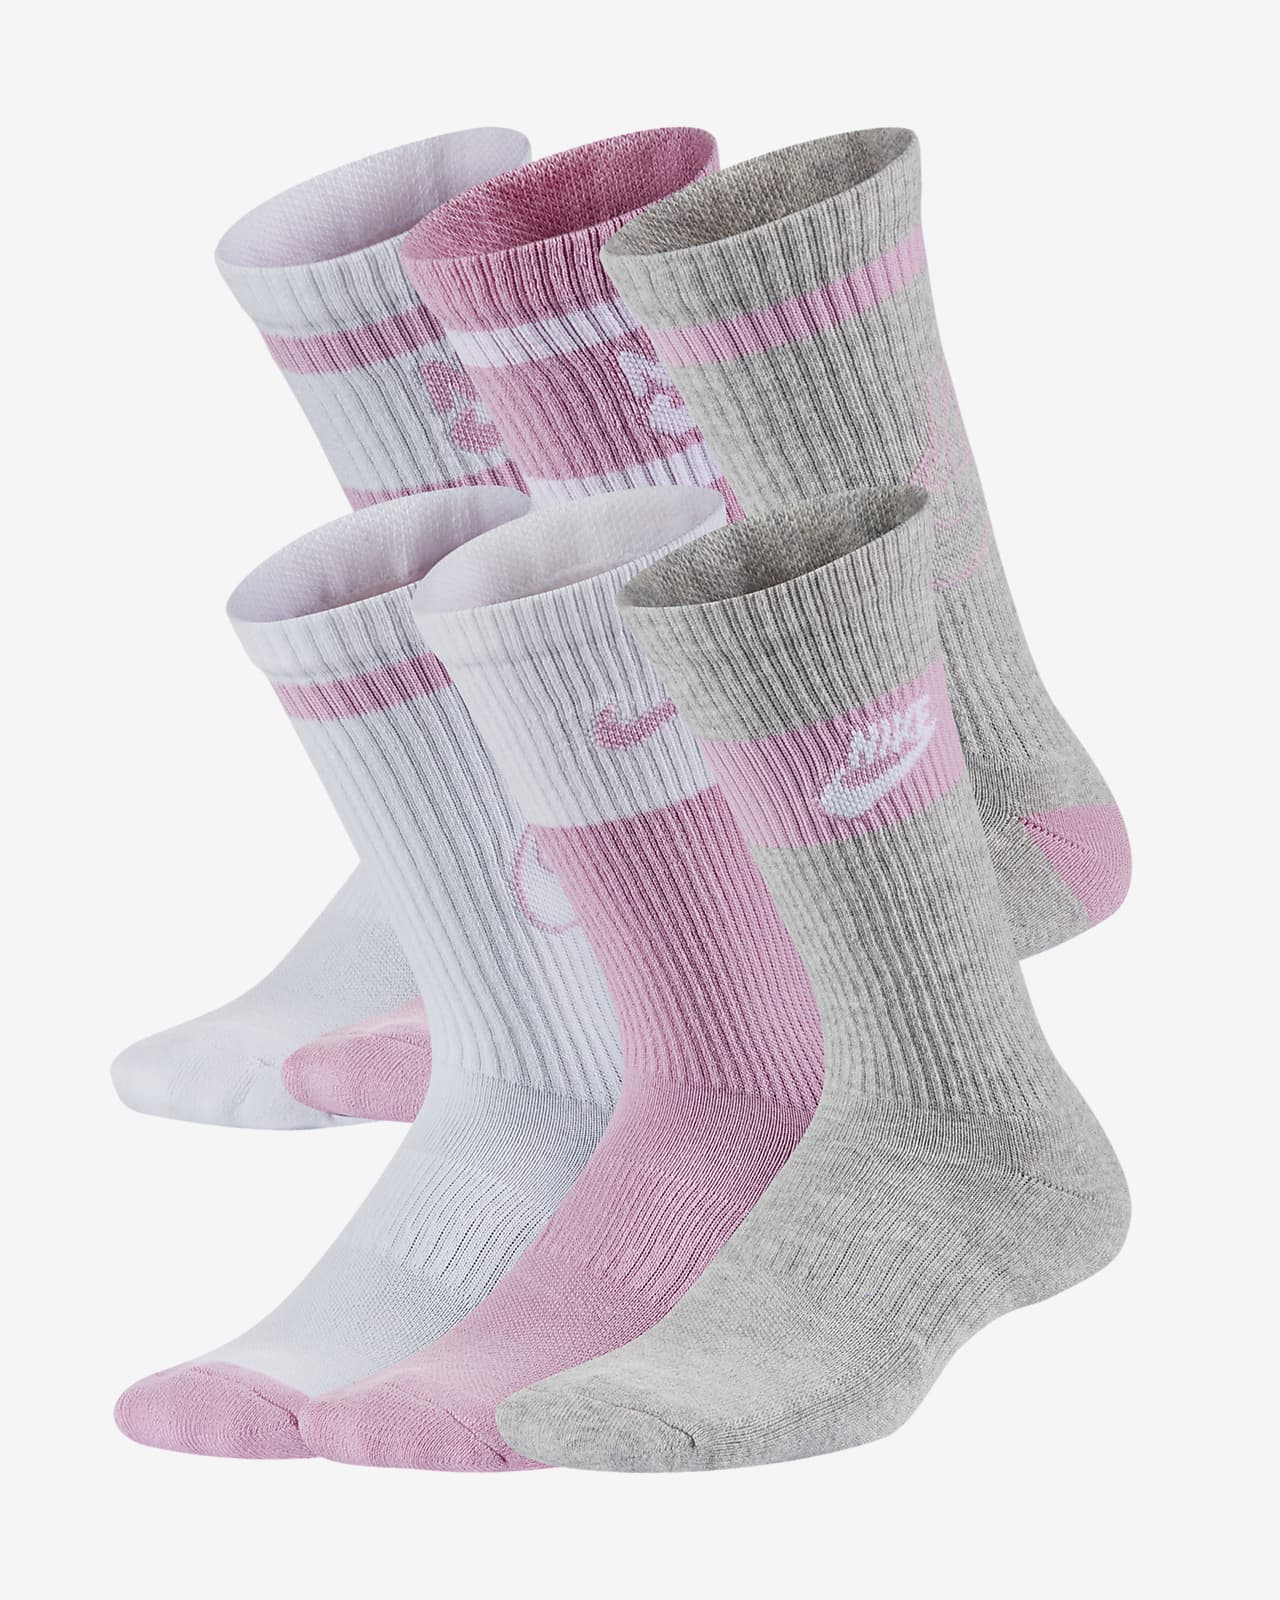 Nike Everyday Kids' Cushioned Crew Socks (6 Pairs)